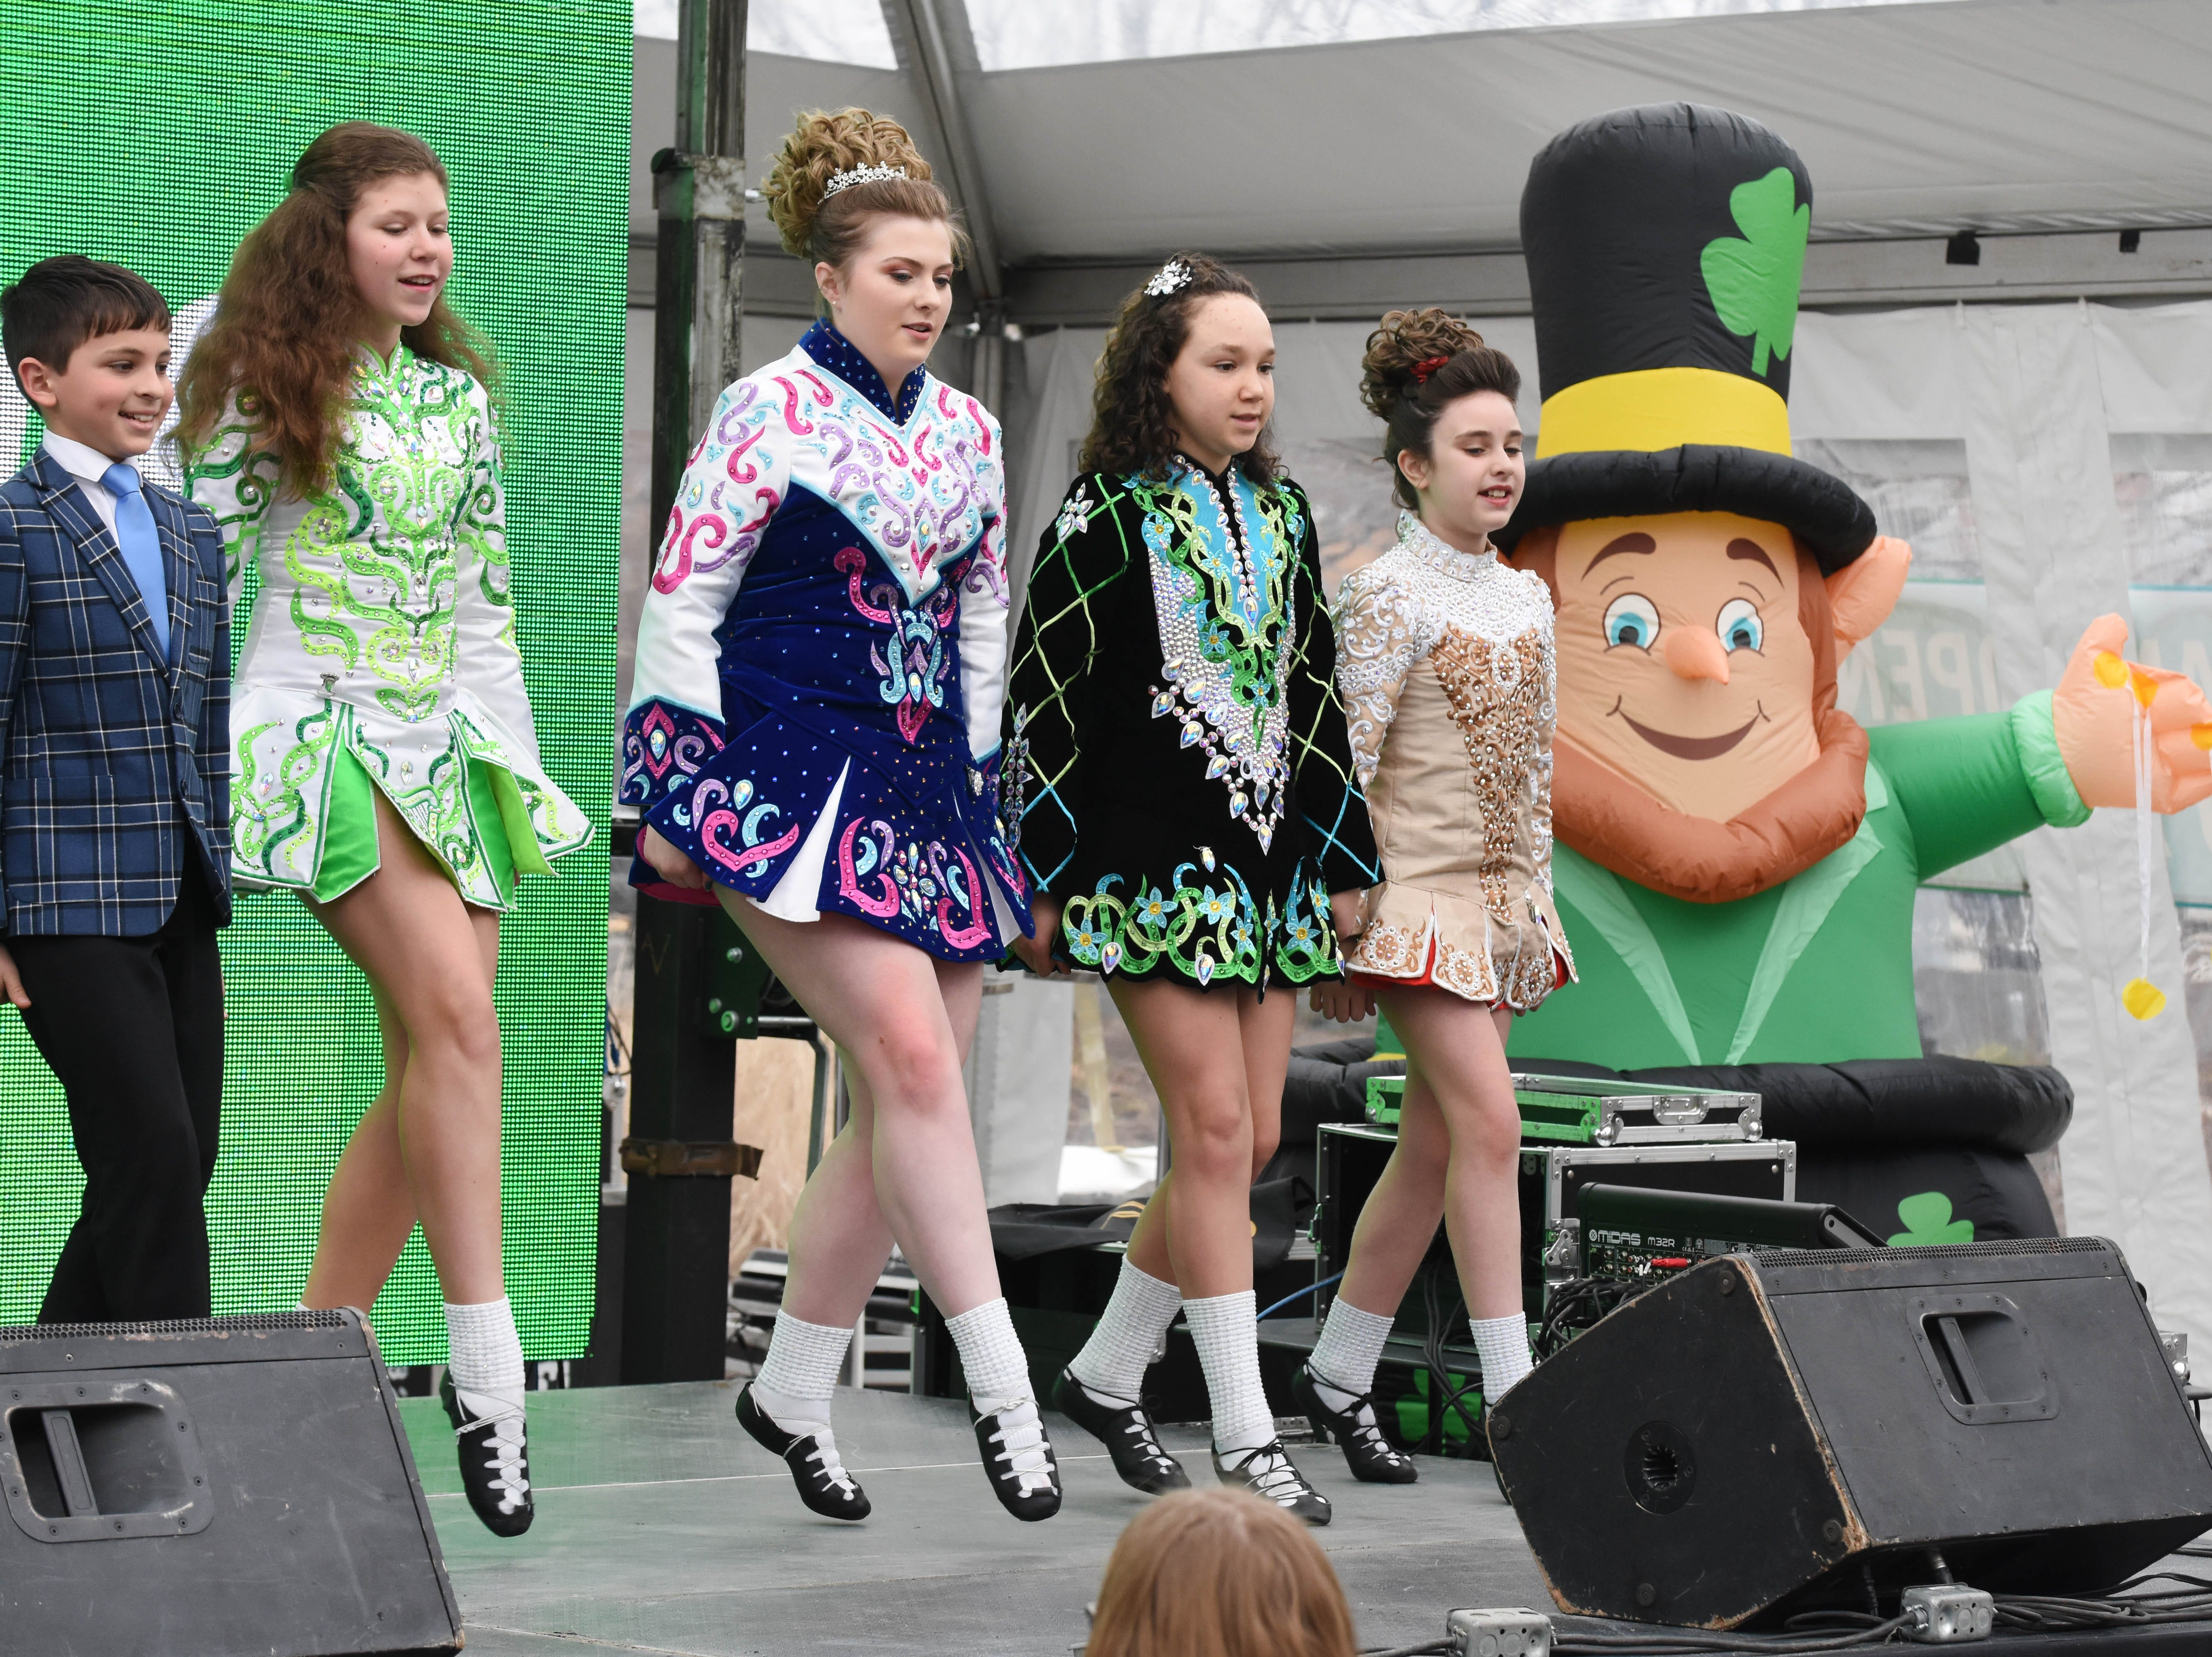 Members of the Tim O'Hare Irish Dance group of Ann Arbor/Plymouth perform on stage.